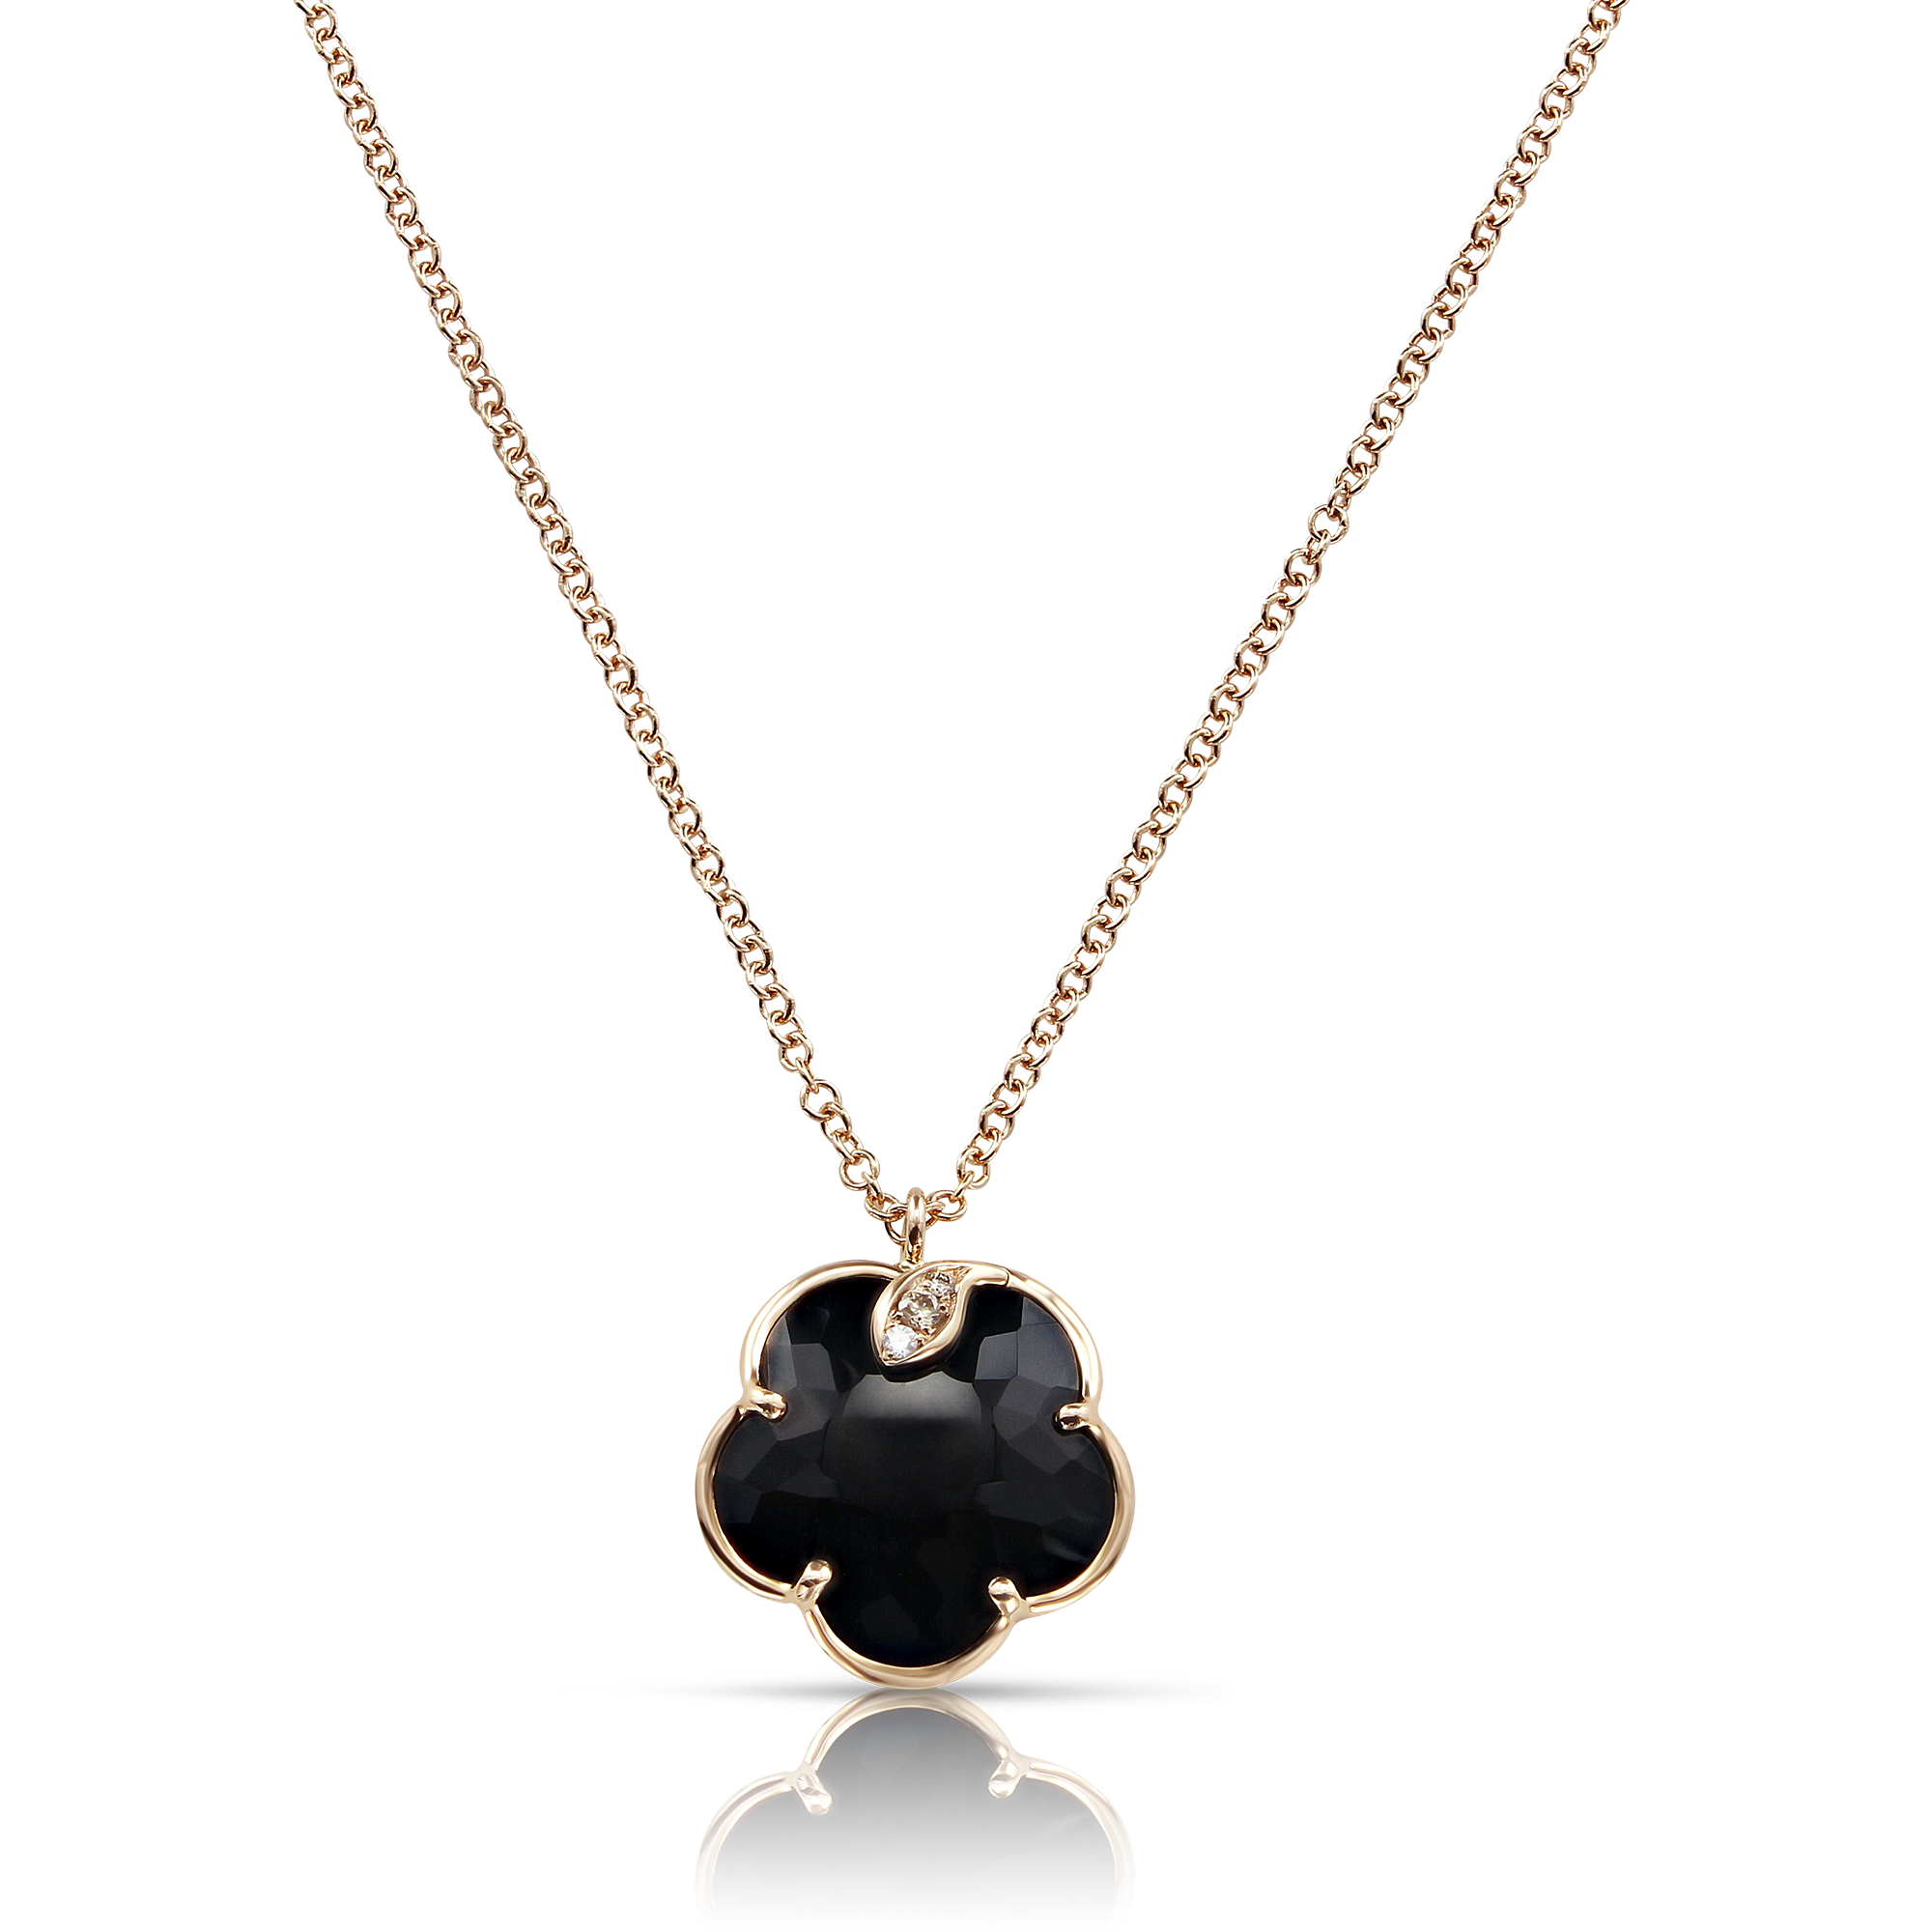 NEW 18k Rose Gold Petit Joli Necklace with Onyx, White and Champagne Diamonds